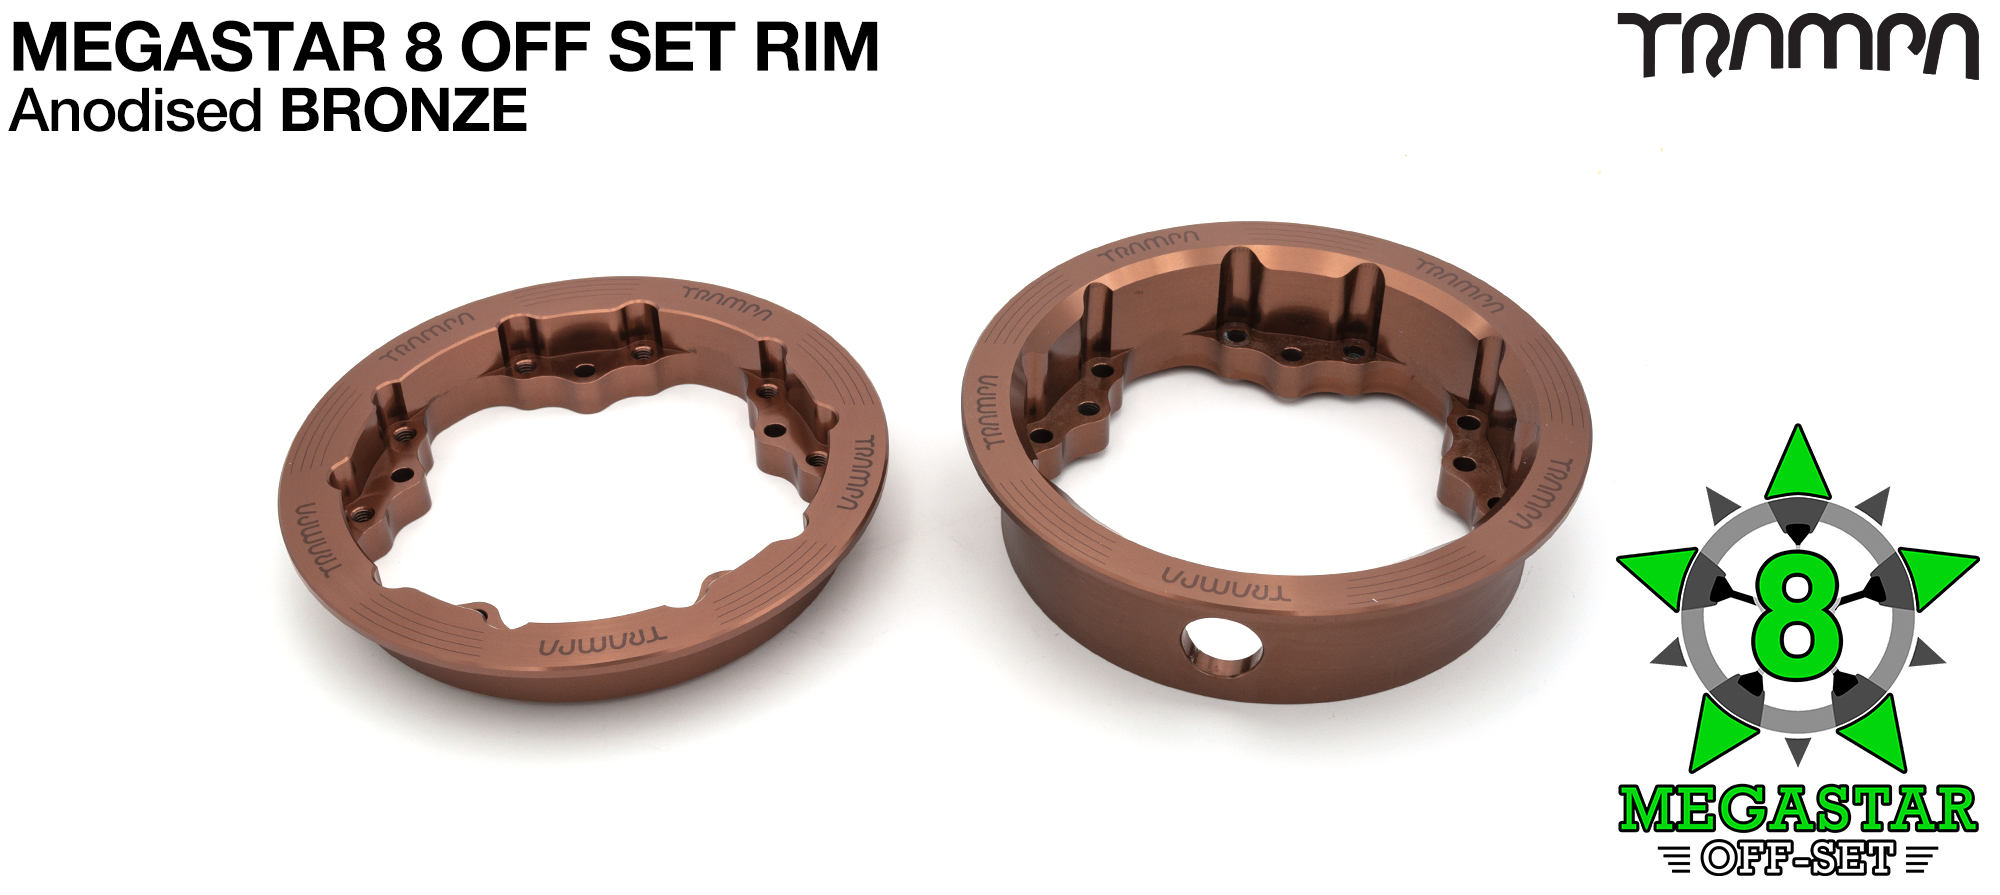 CENTER-SET 8 inch MEGASTAR Rims - BRONZE